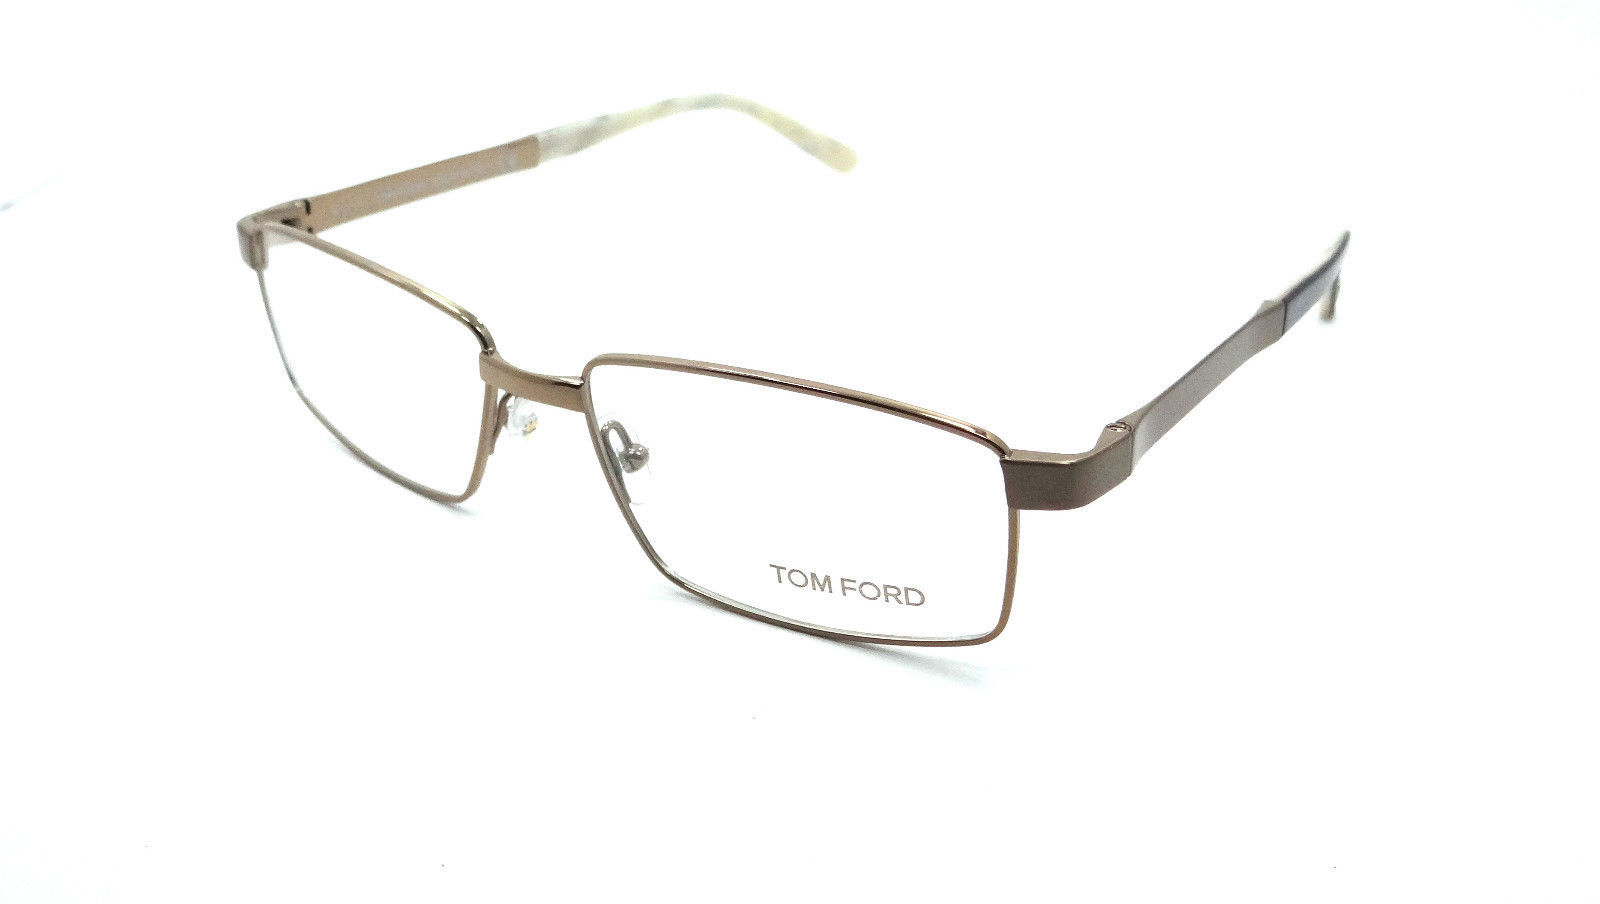 Tom Ford Rx Eyeglasses Frames TF 5205 028 52x16 Gold Made in Italy